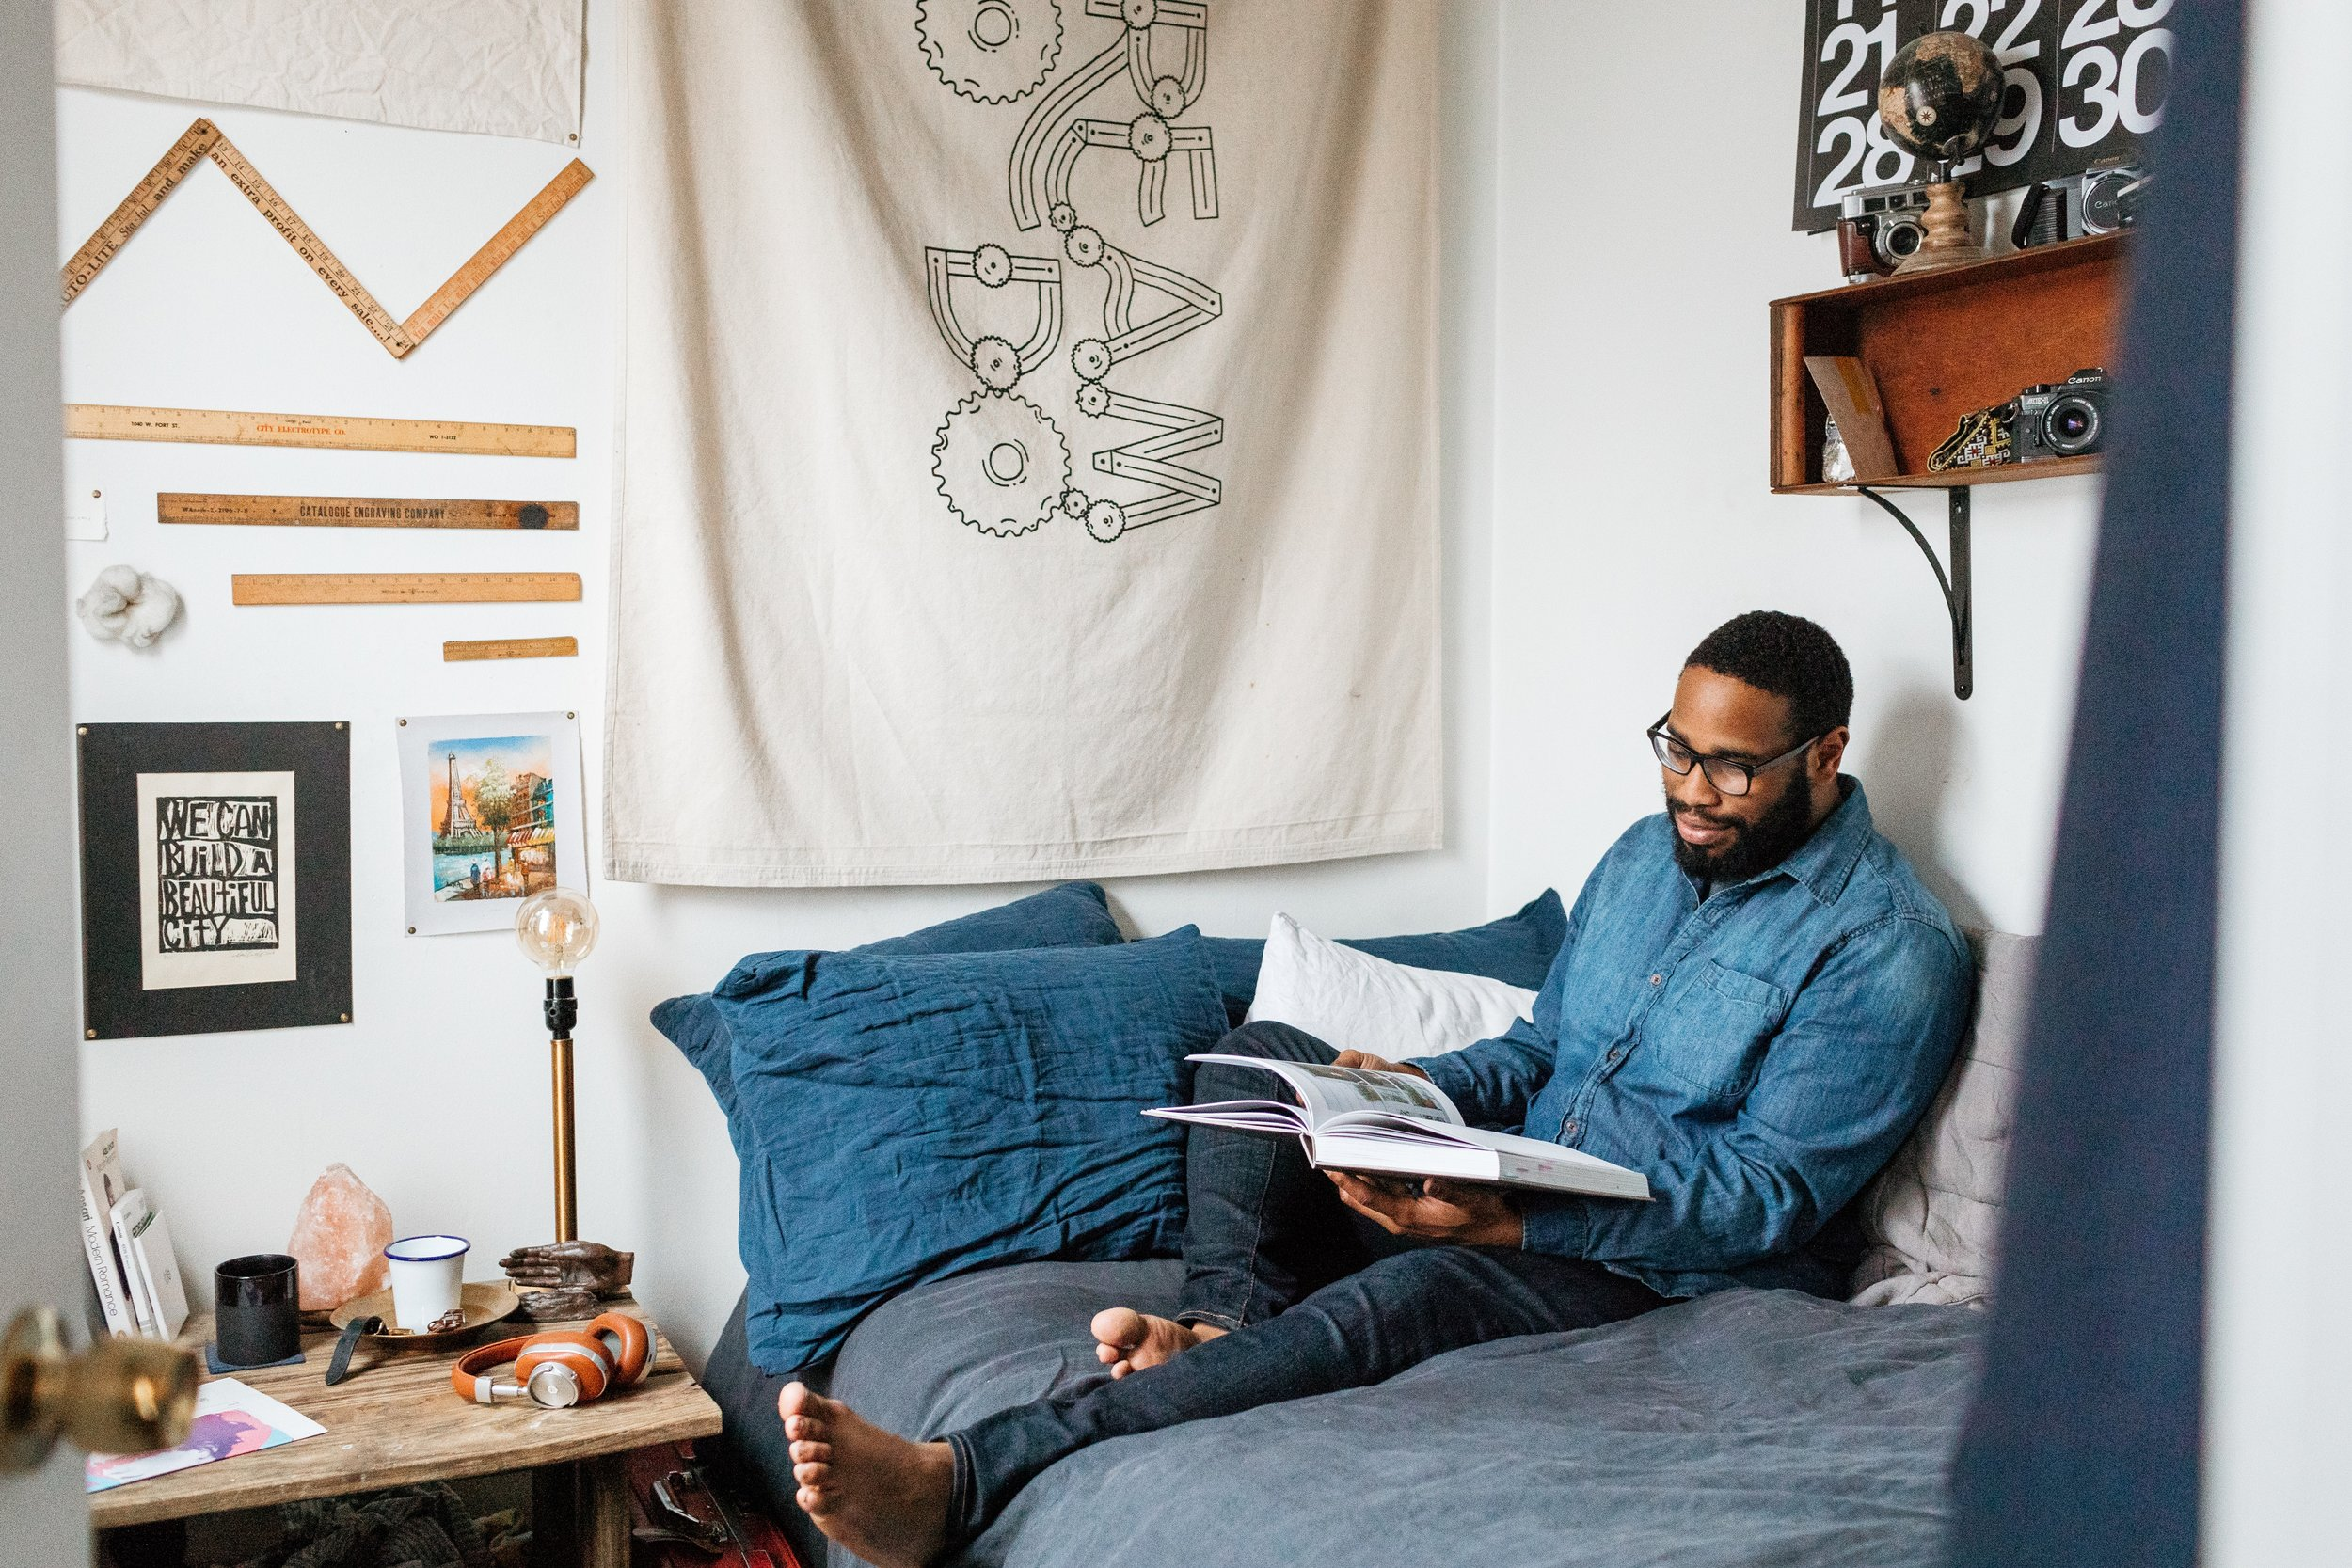 A cozy Saturday morning as photographed by  Matt Scheffer.